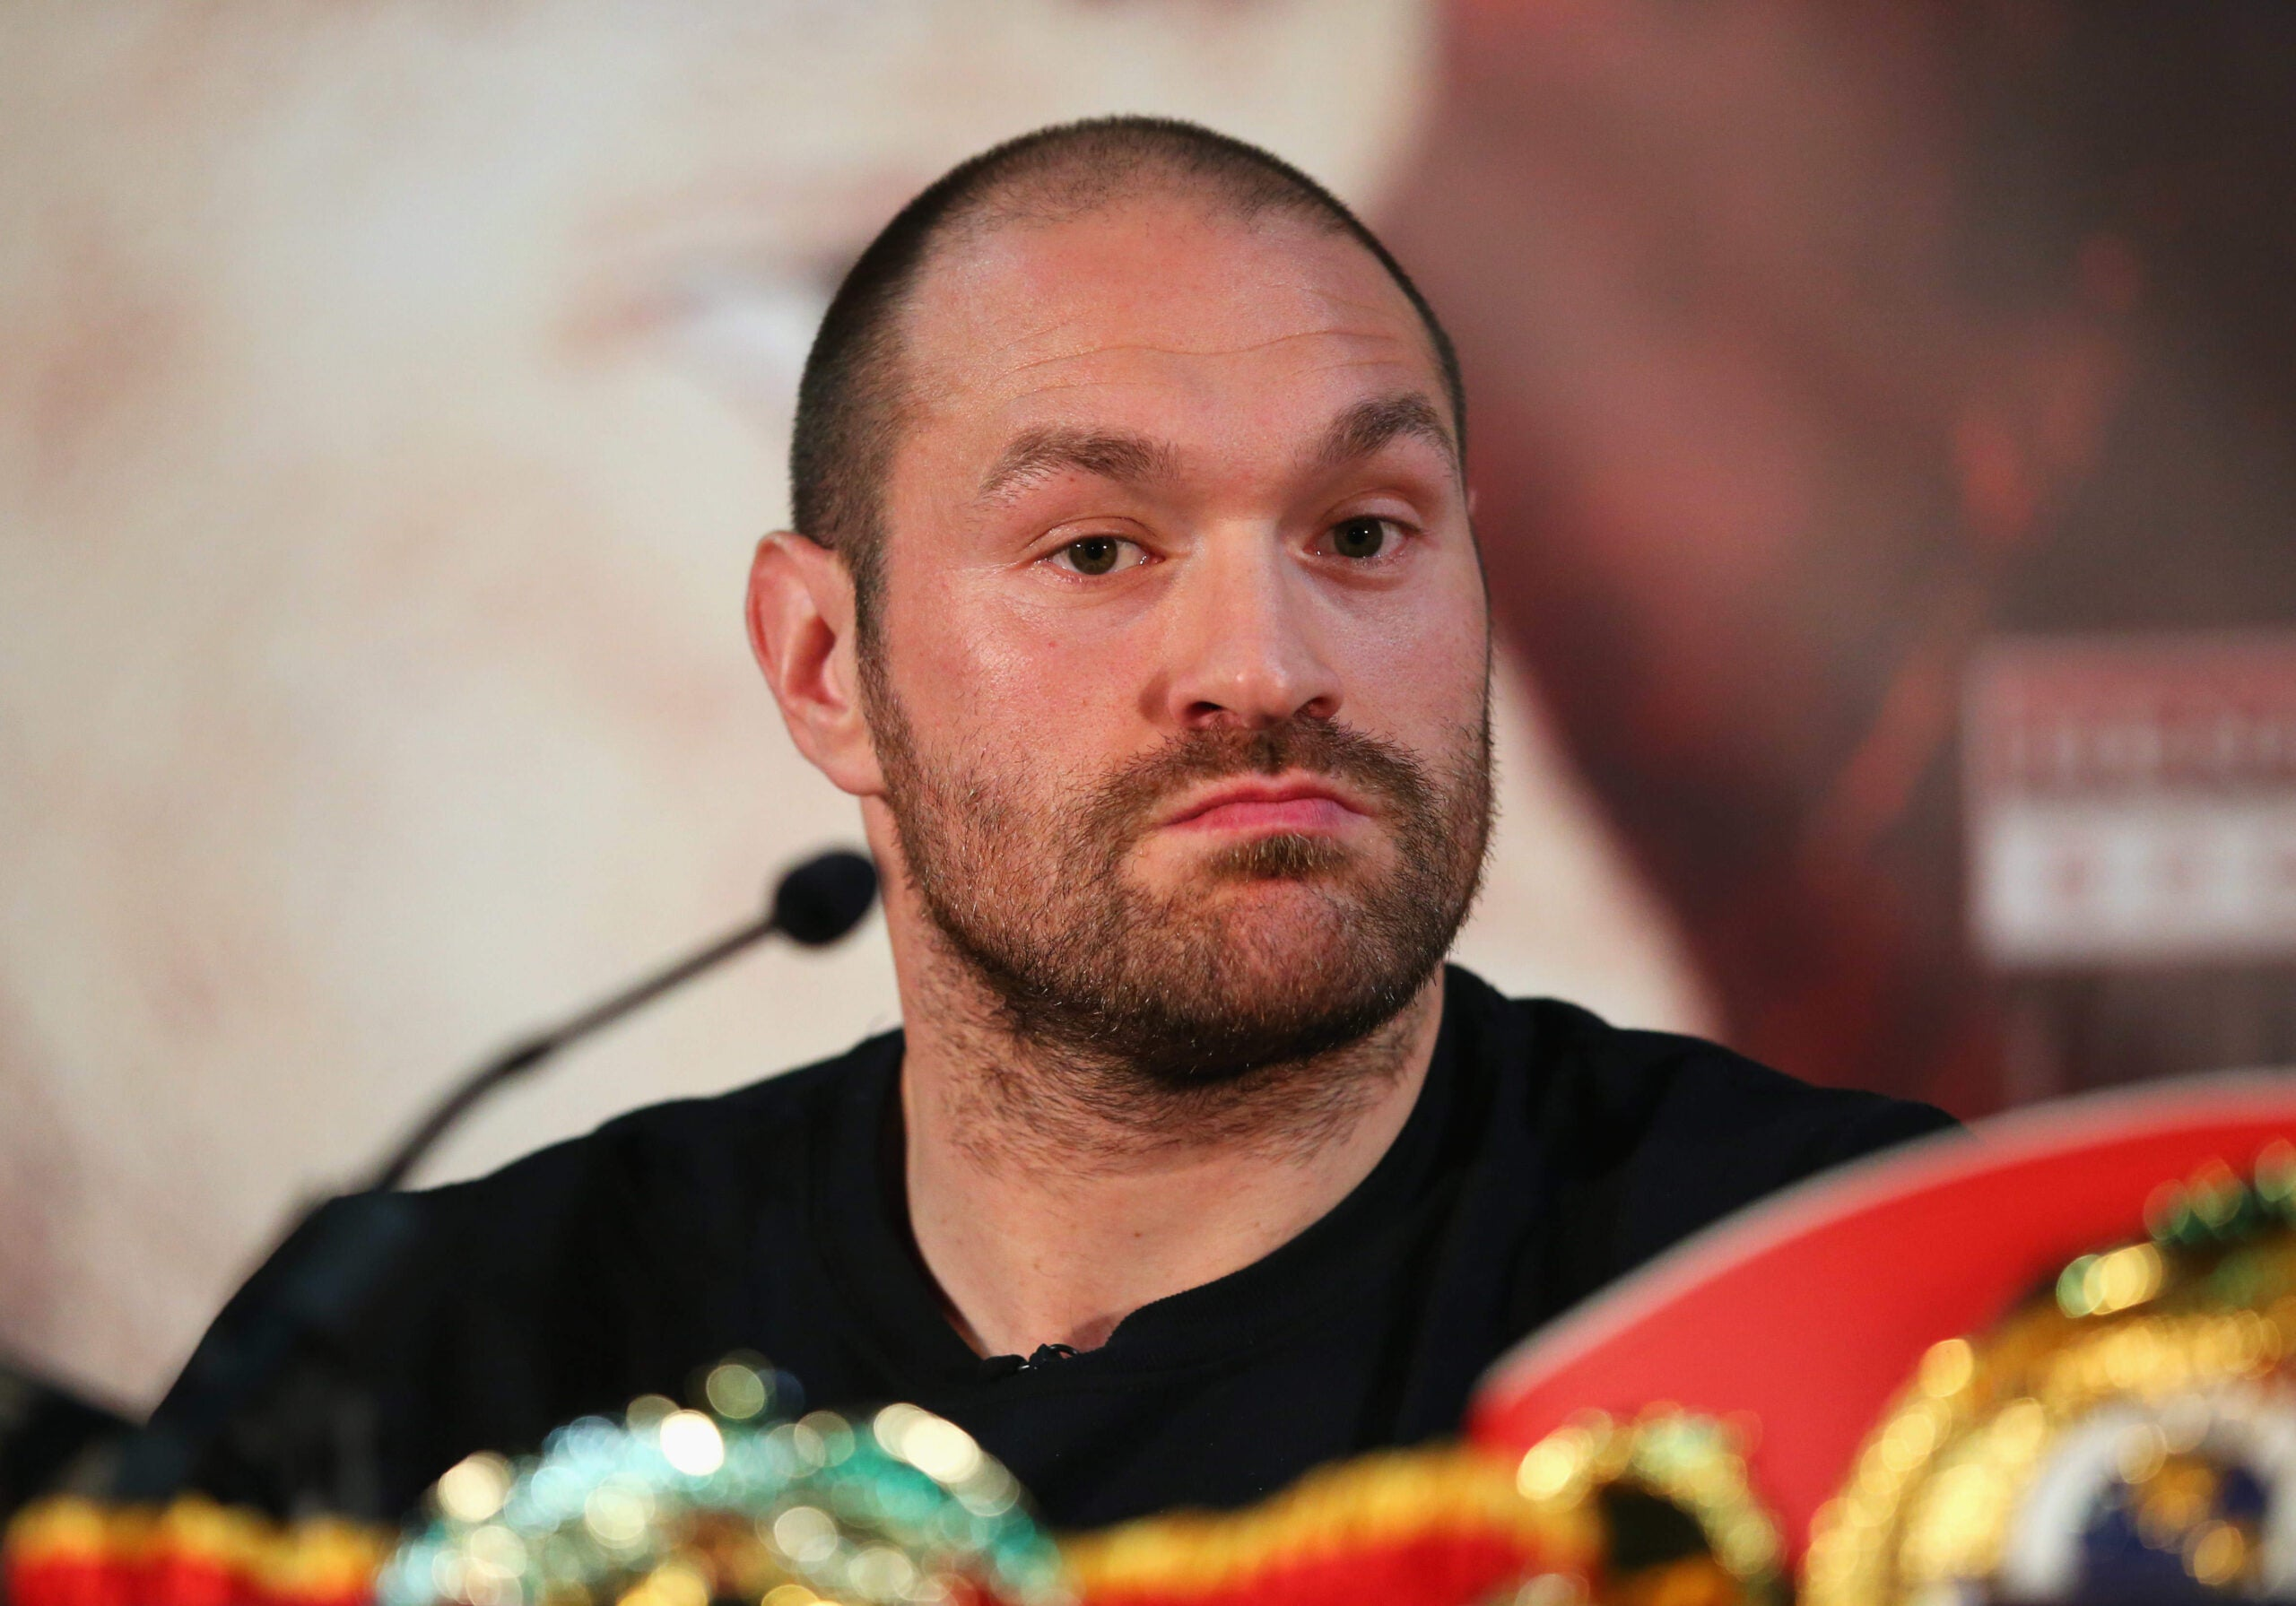 What's eating Tyson Fury?